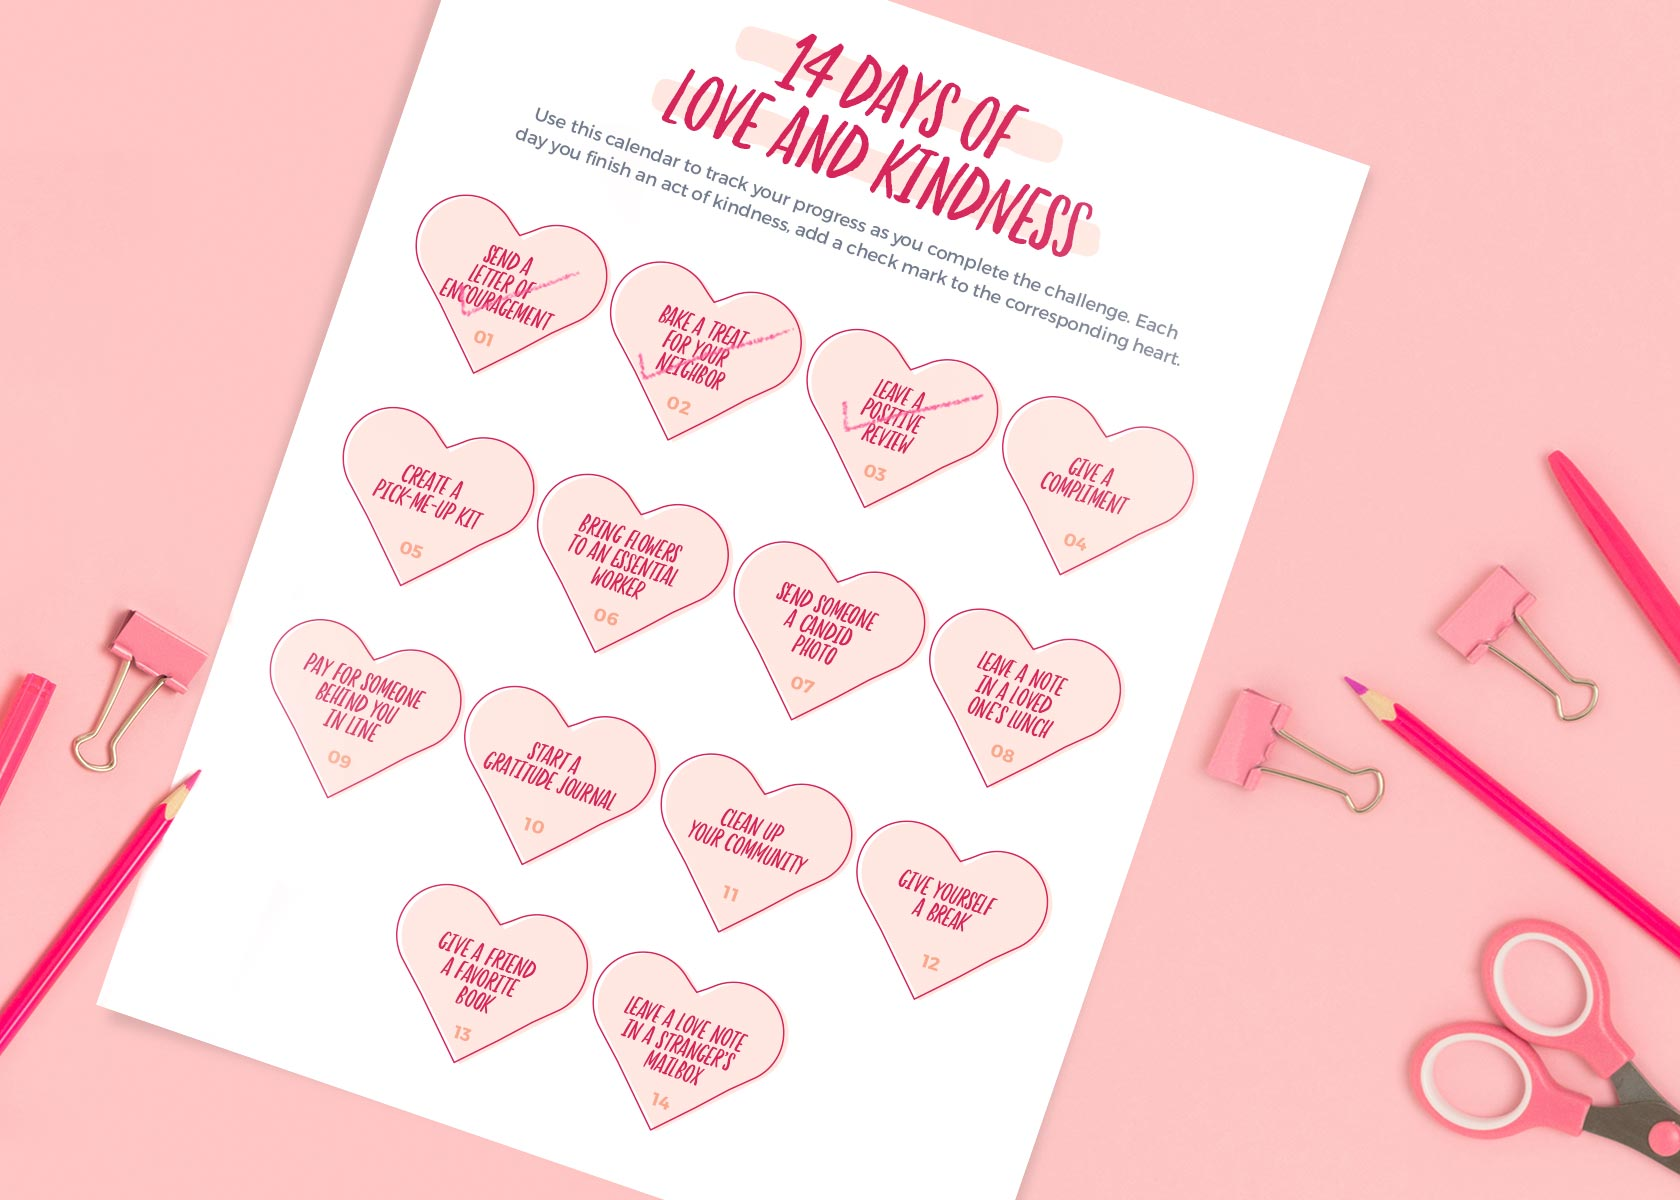 Photo of love and kindness ideas calendar on pink table